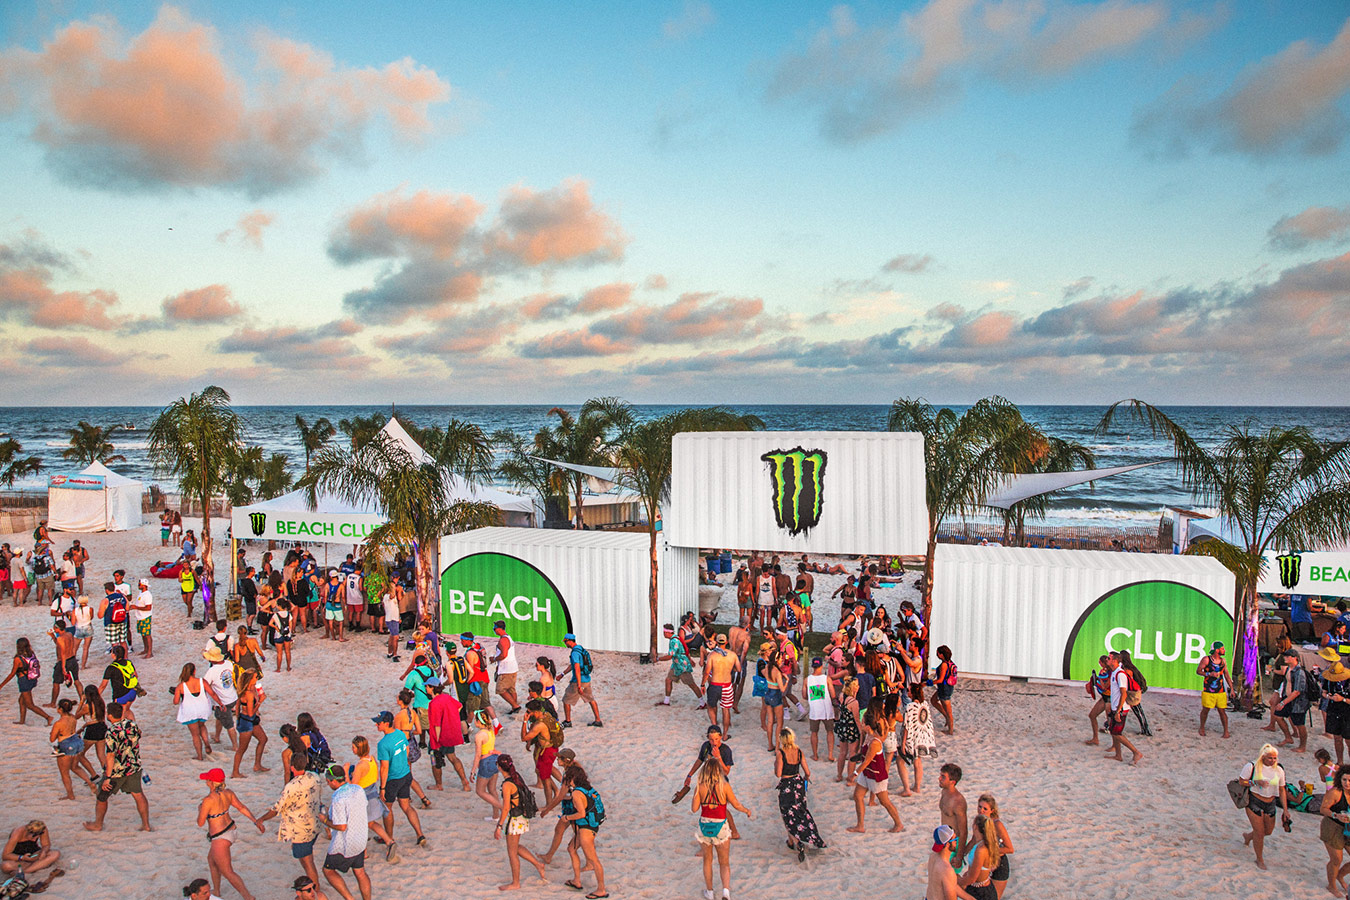 SWIM AND DANCE ALL DAY AT MONSTER BEACH BLUB